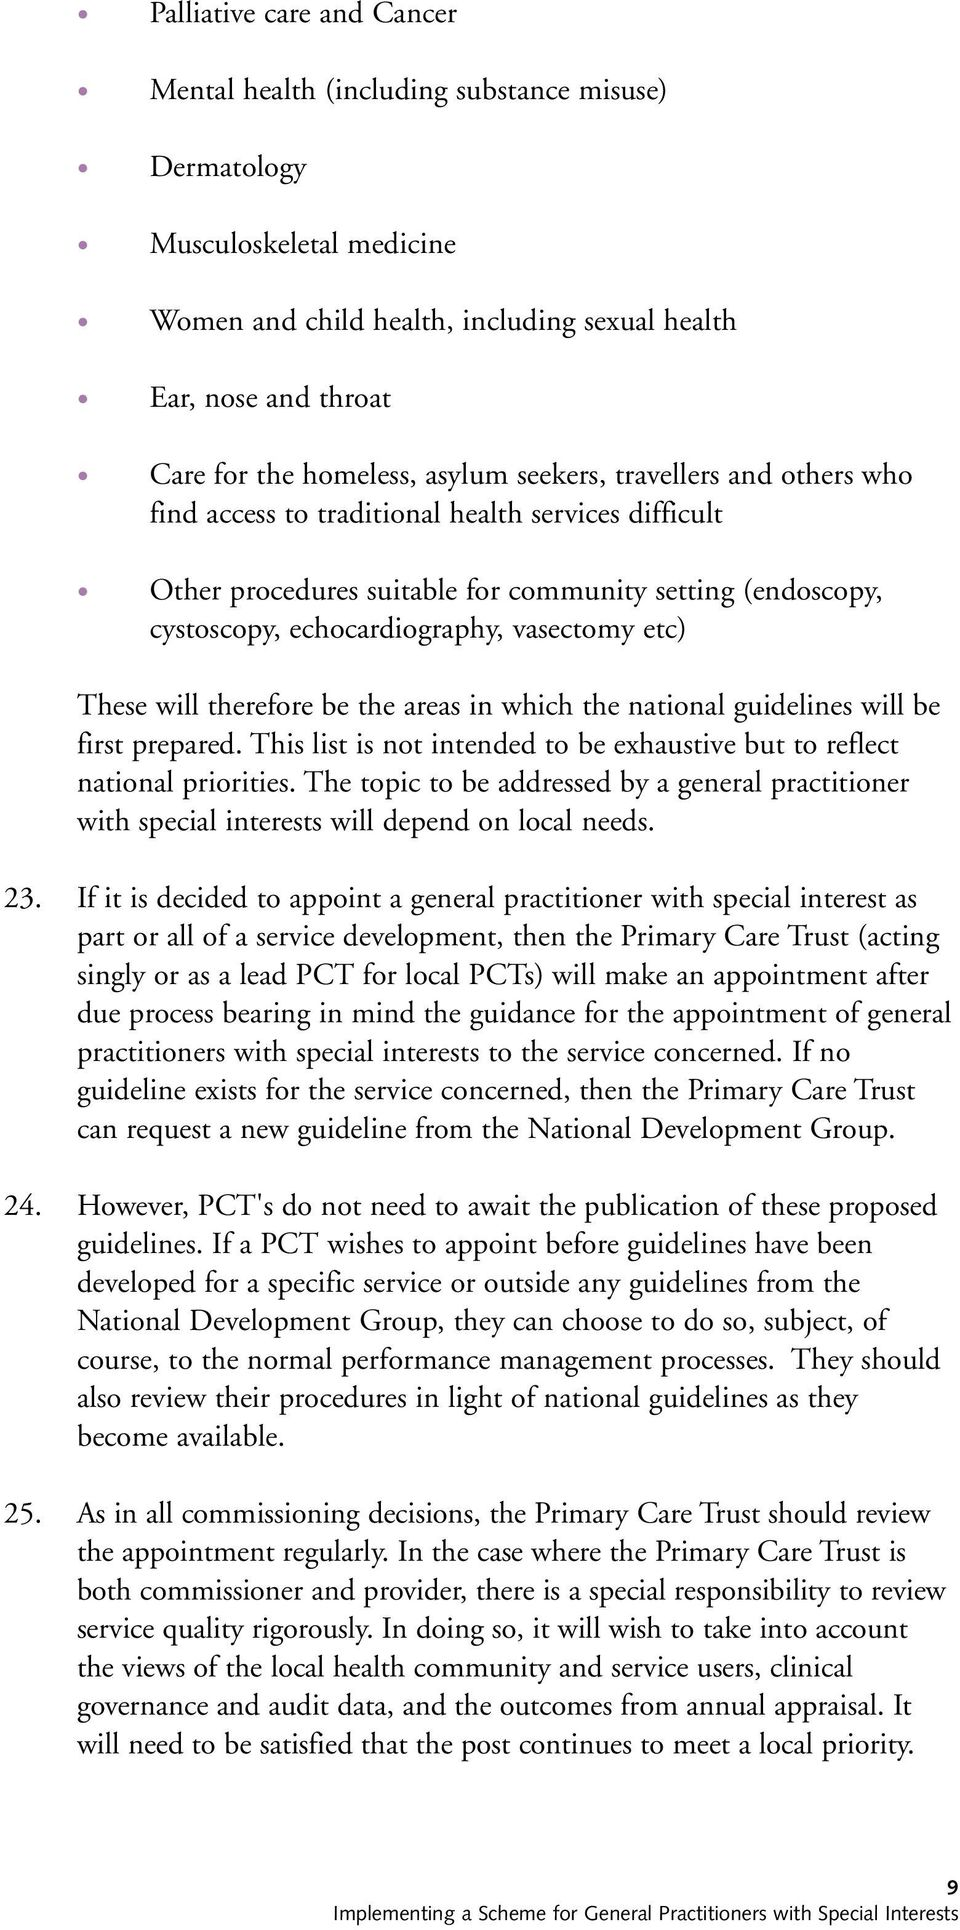 These will therefore be the areas in which the national guidelines will be first prepared. This list is not intended to be exhaustive but to reflect national priorities.